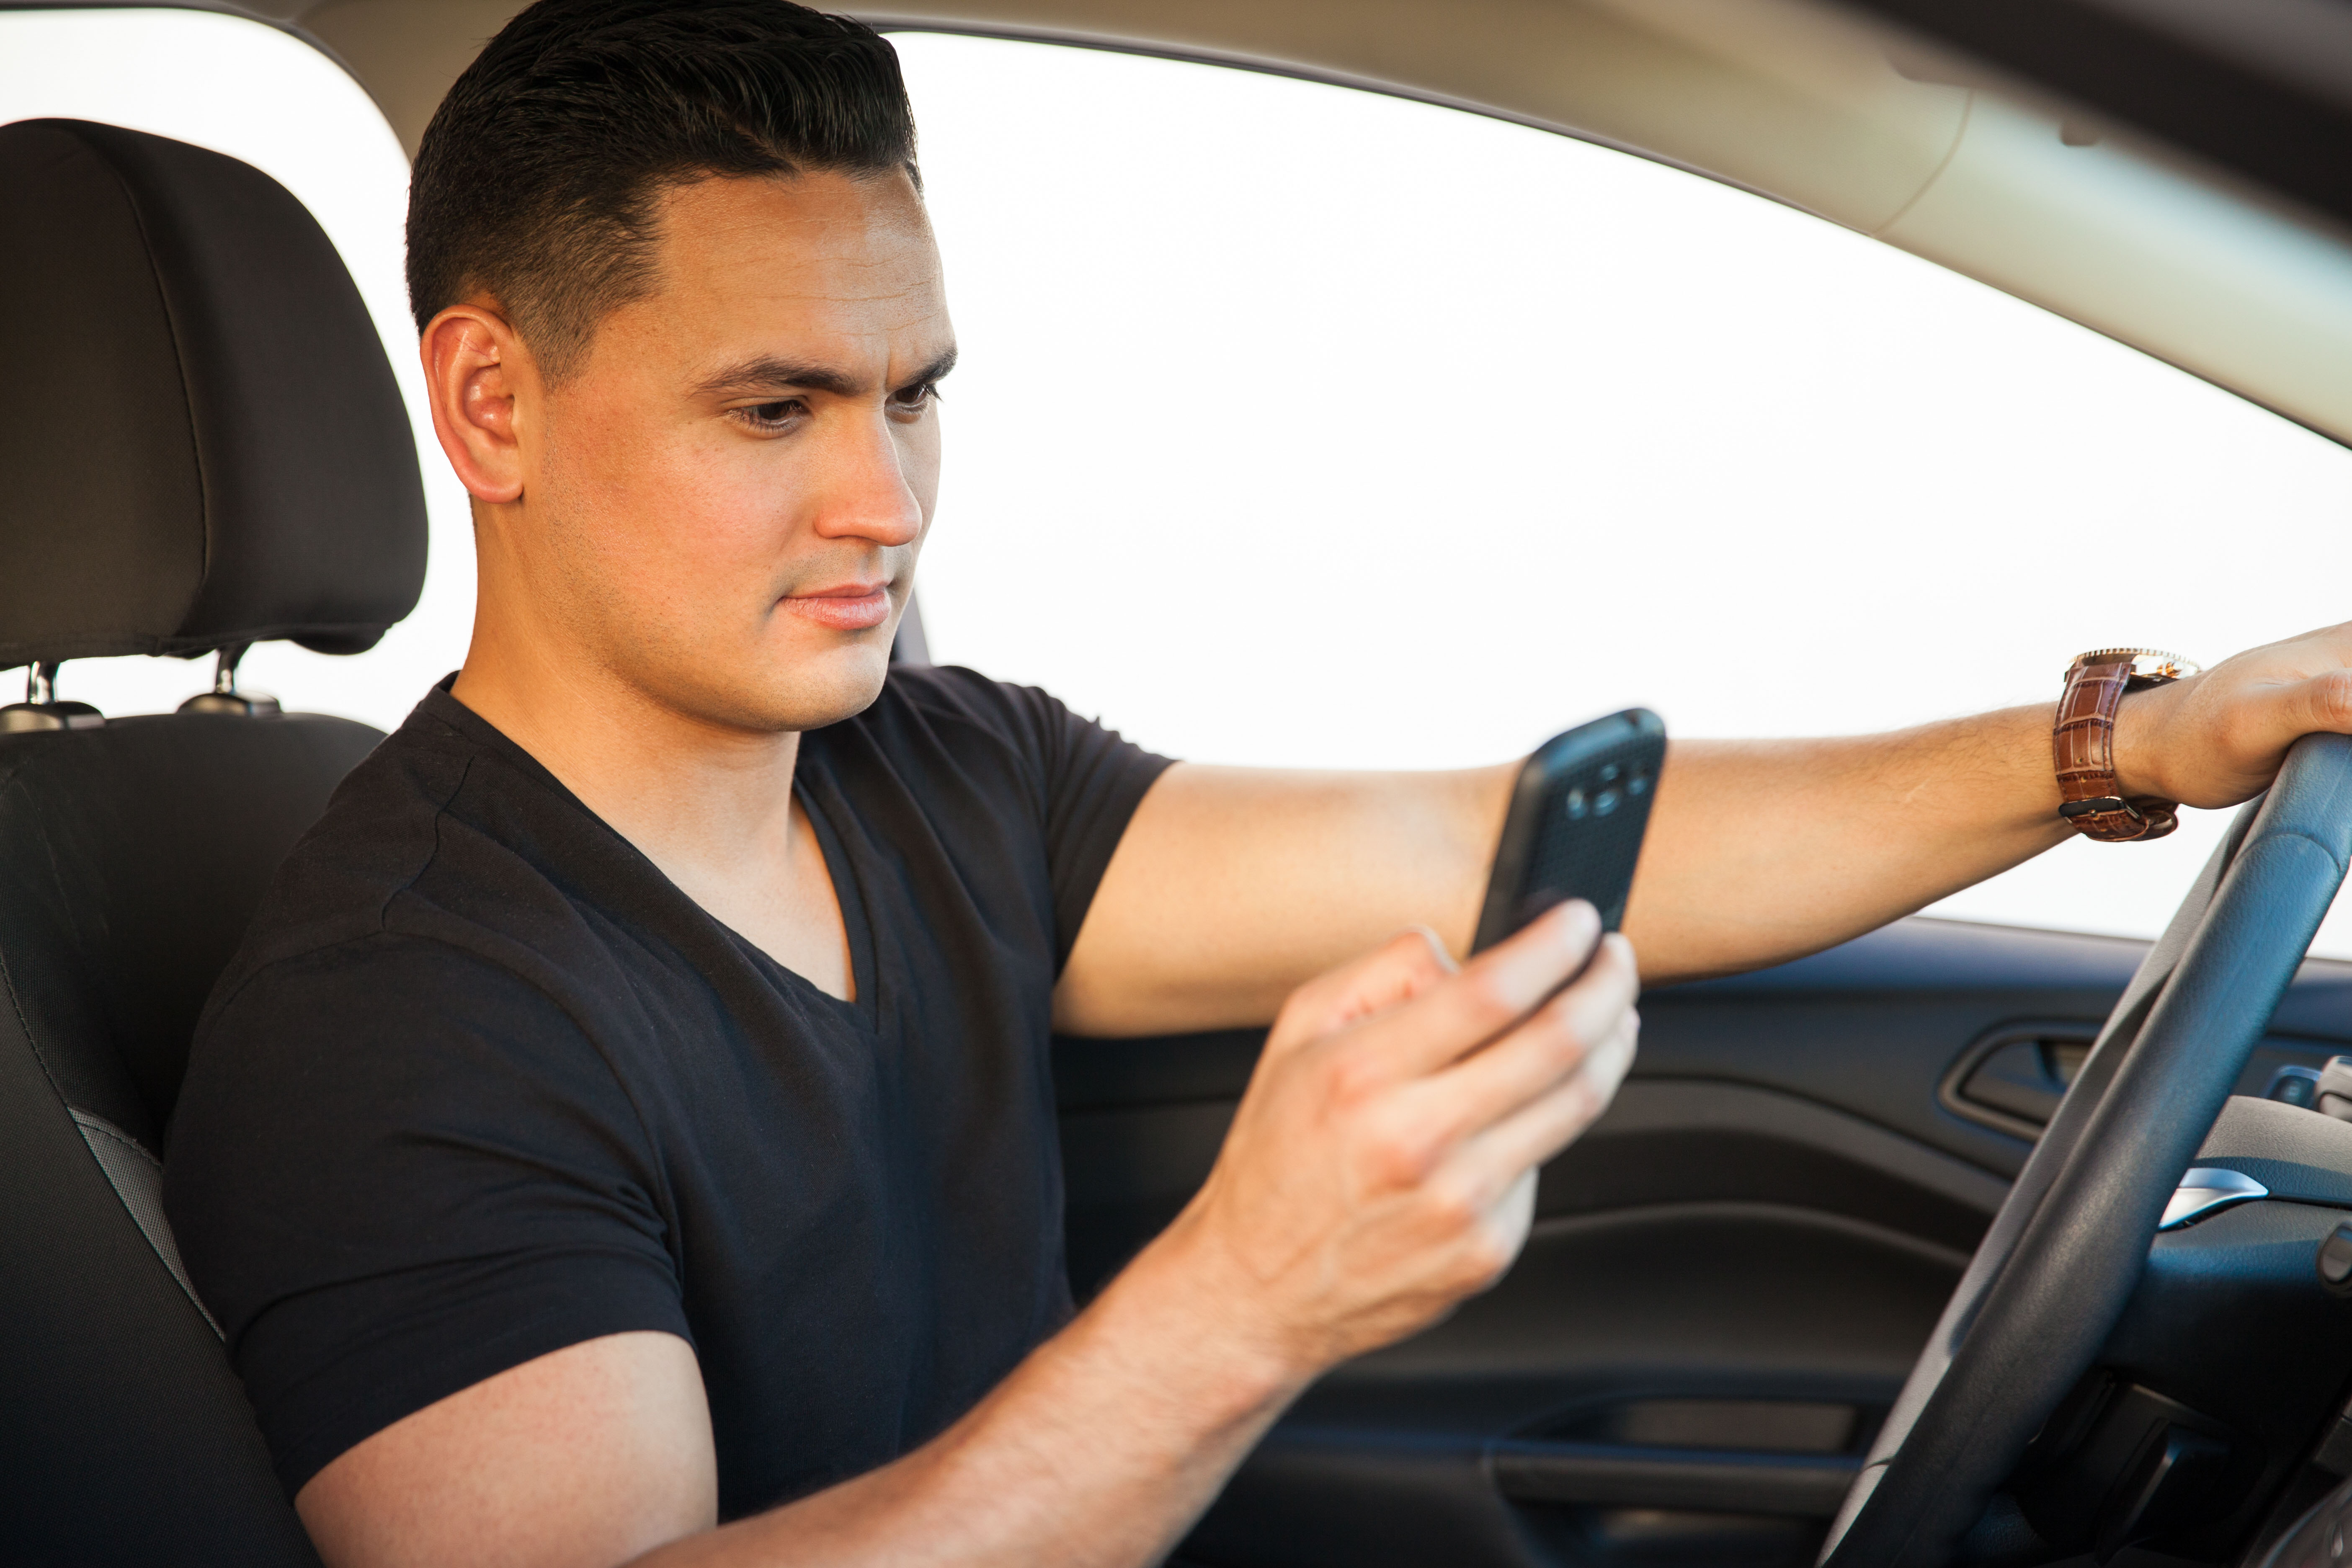 Man driving cell phone